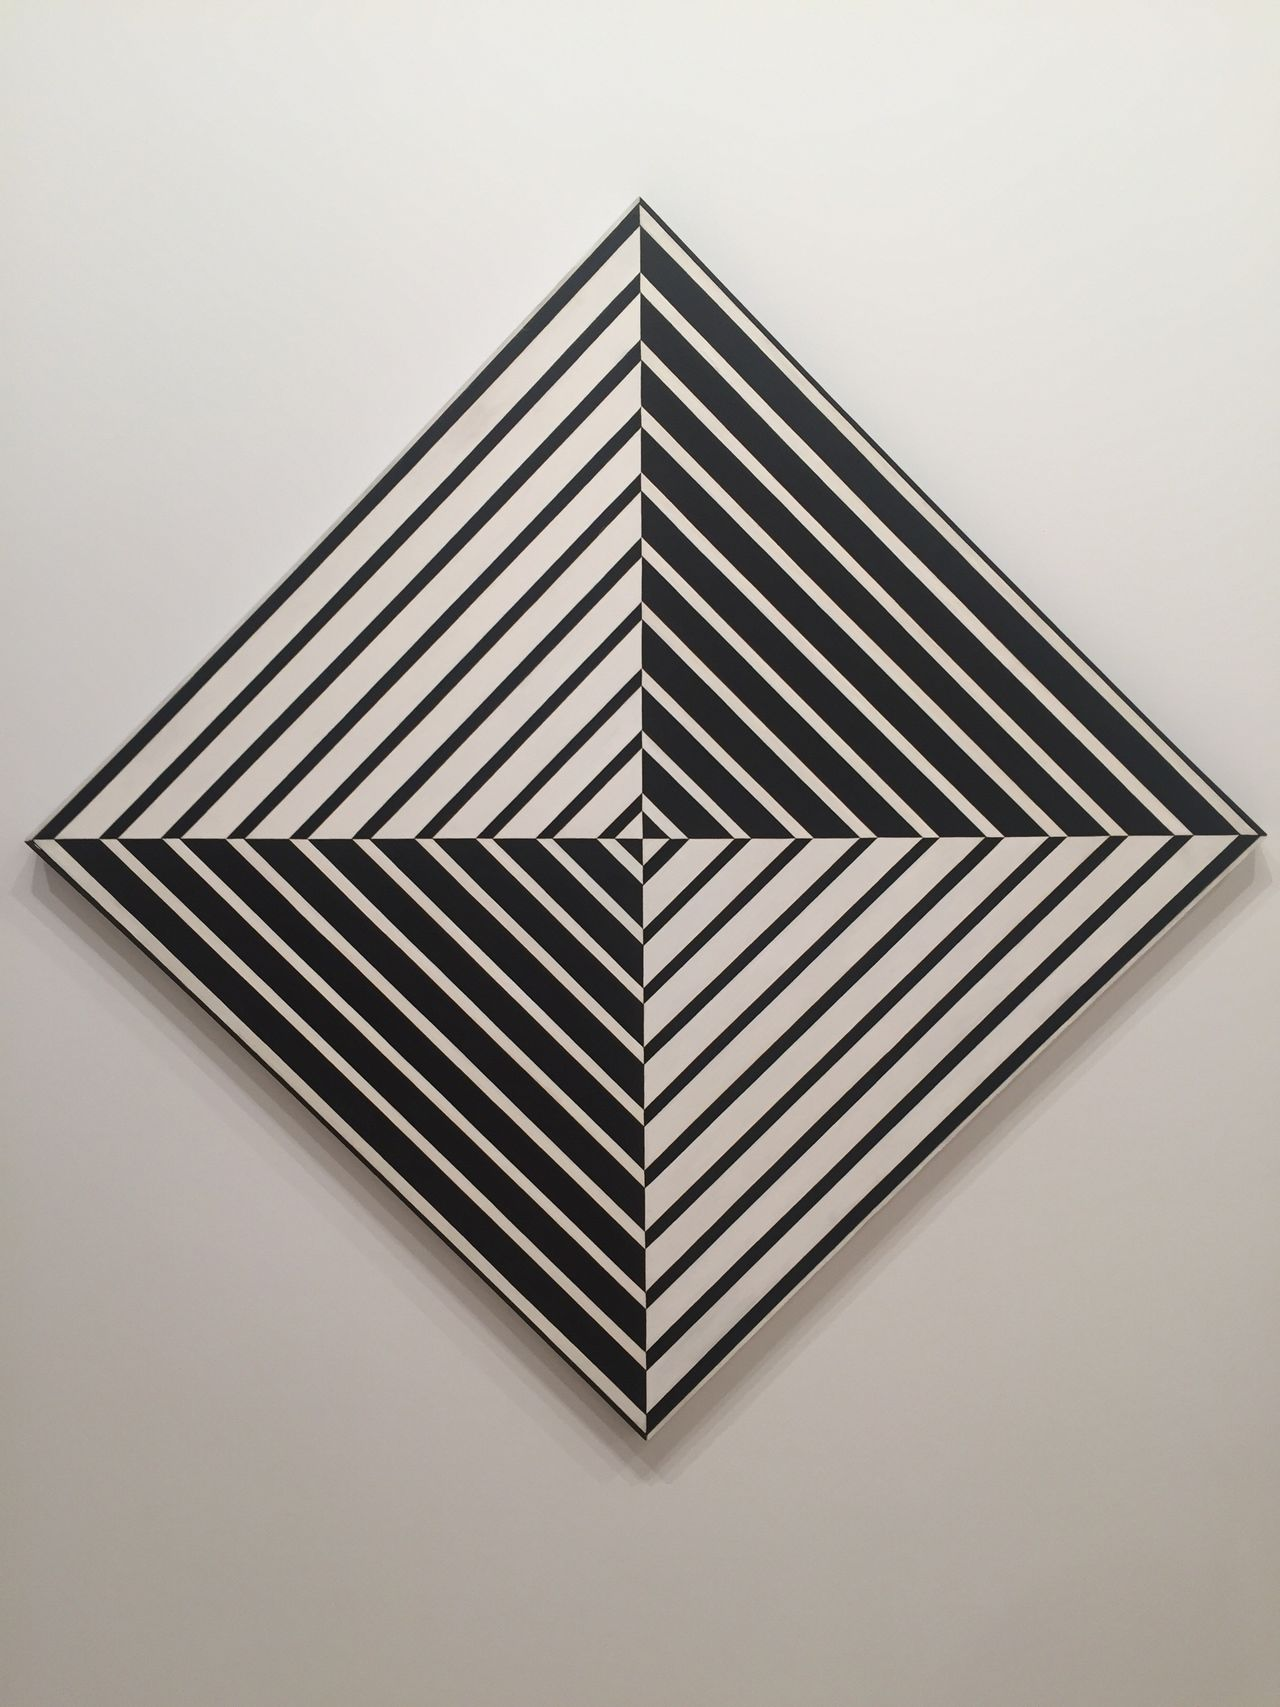 Carmel Herrera Pattern Geometric Shape White Background black background Whitney Museum, NYC Geometric Abstraction Cuban Artist Diagonal Lines Lady Lineart Wall Art